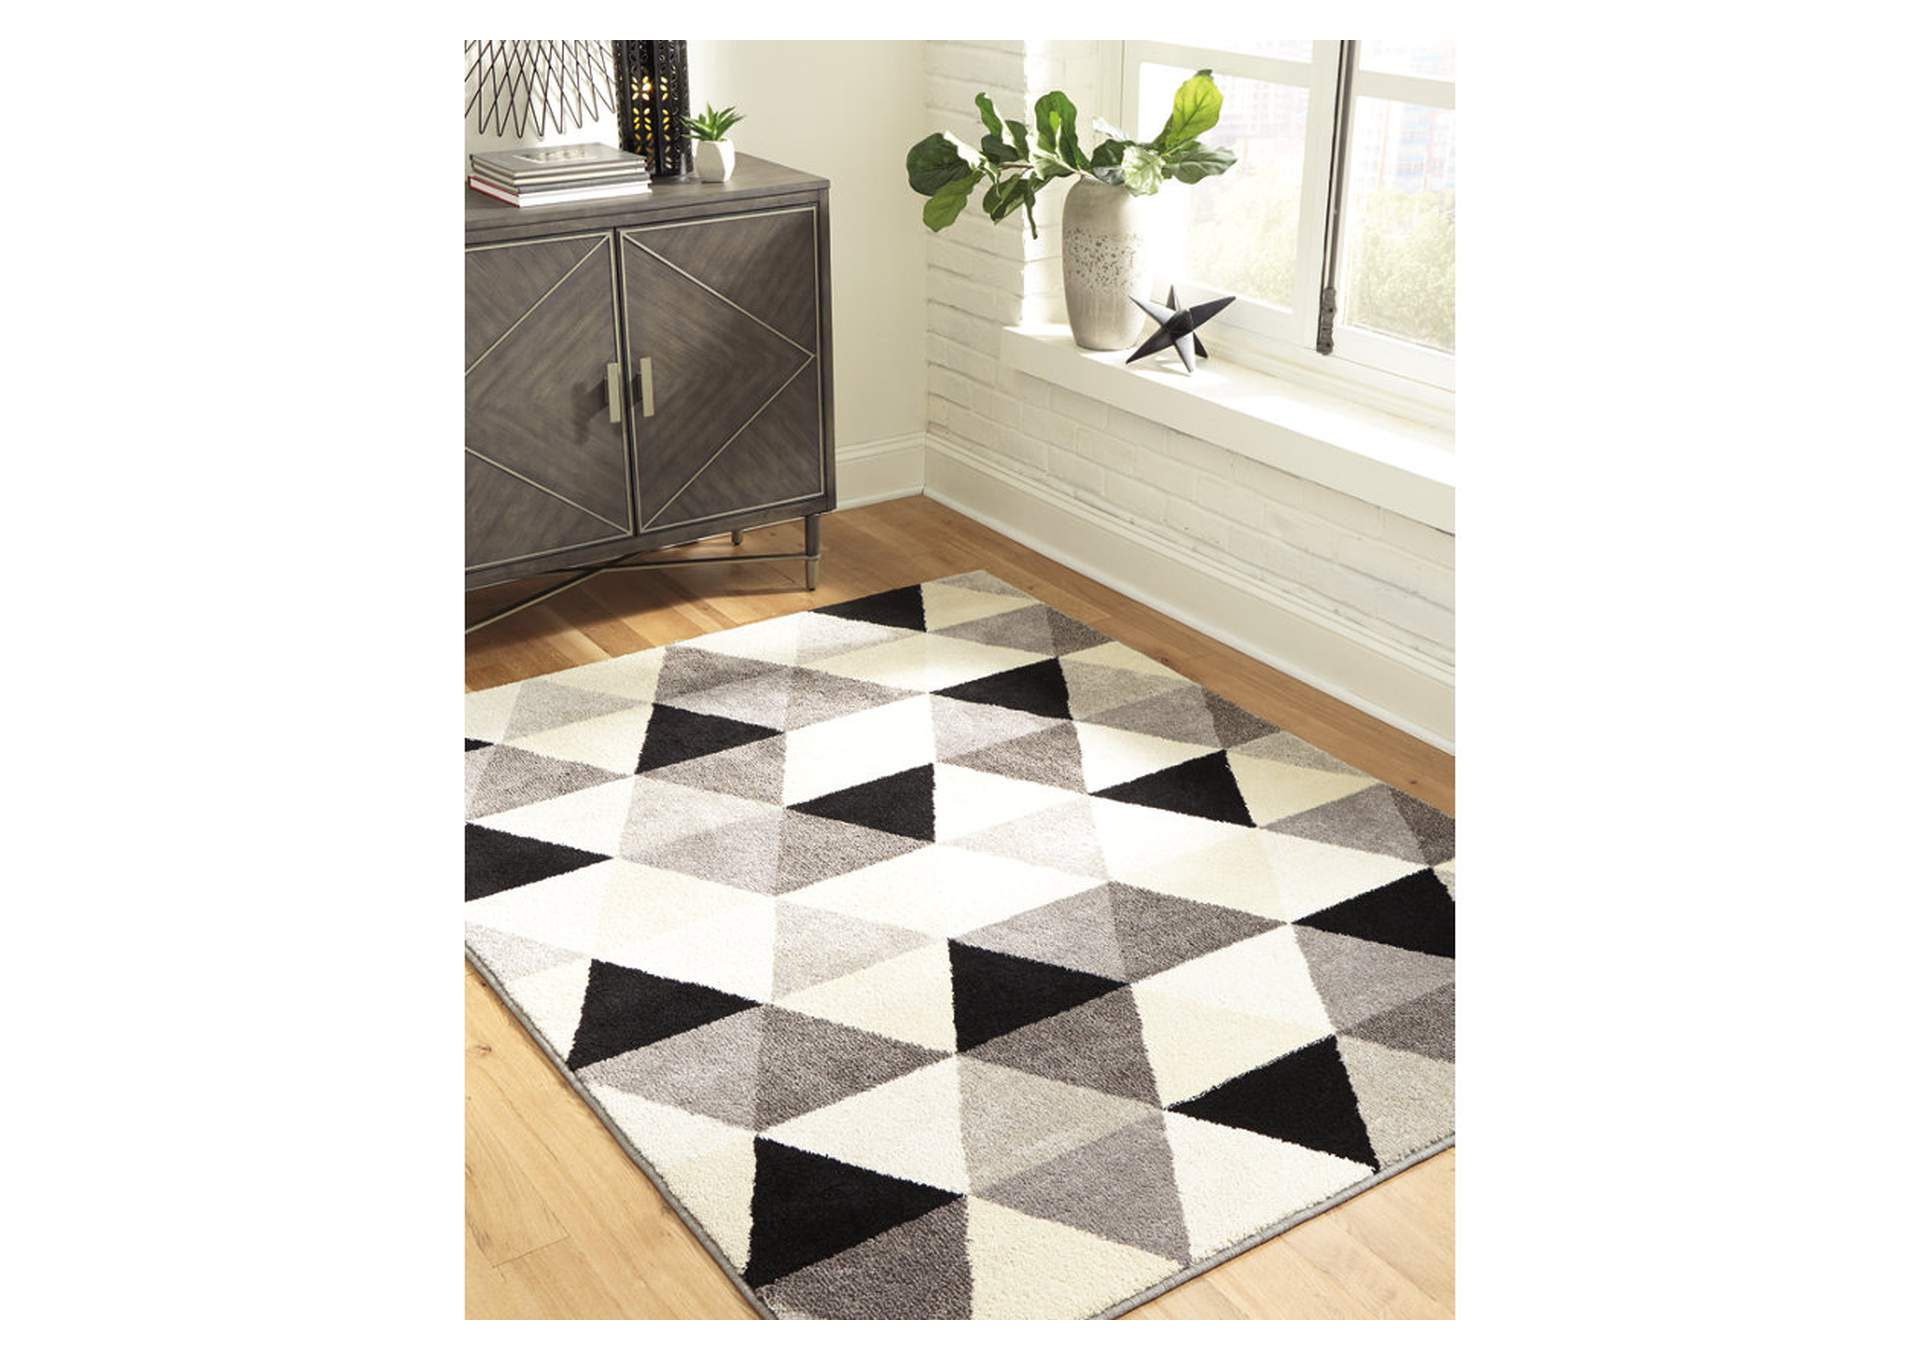 Jamaun Black/Cream Large Rug,Signature Design By Ashley